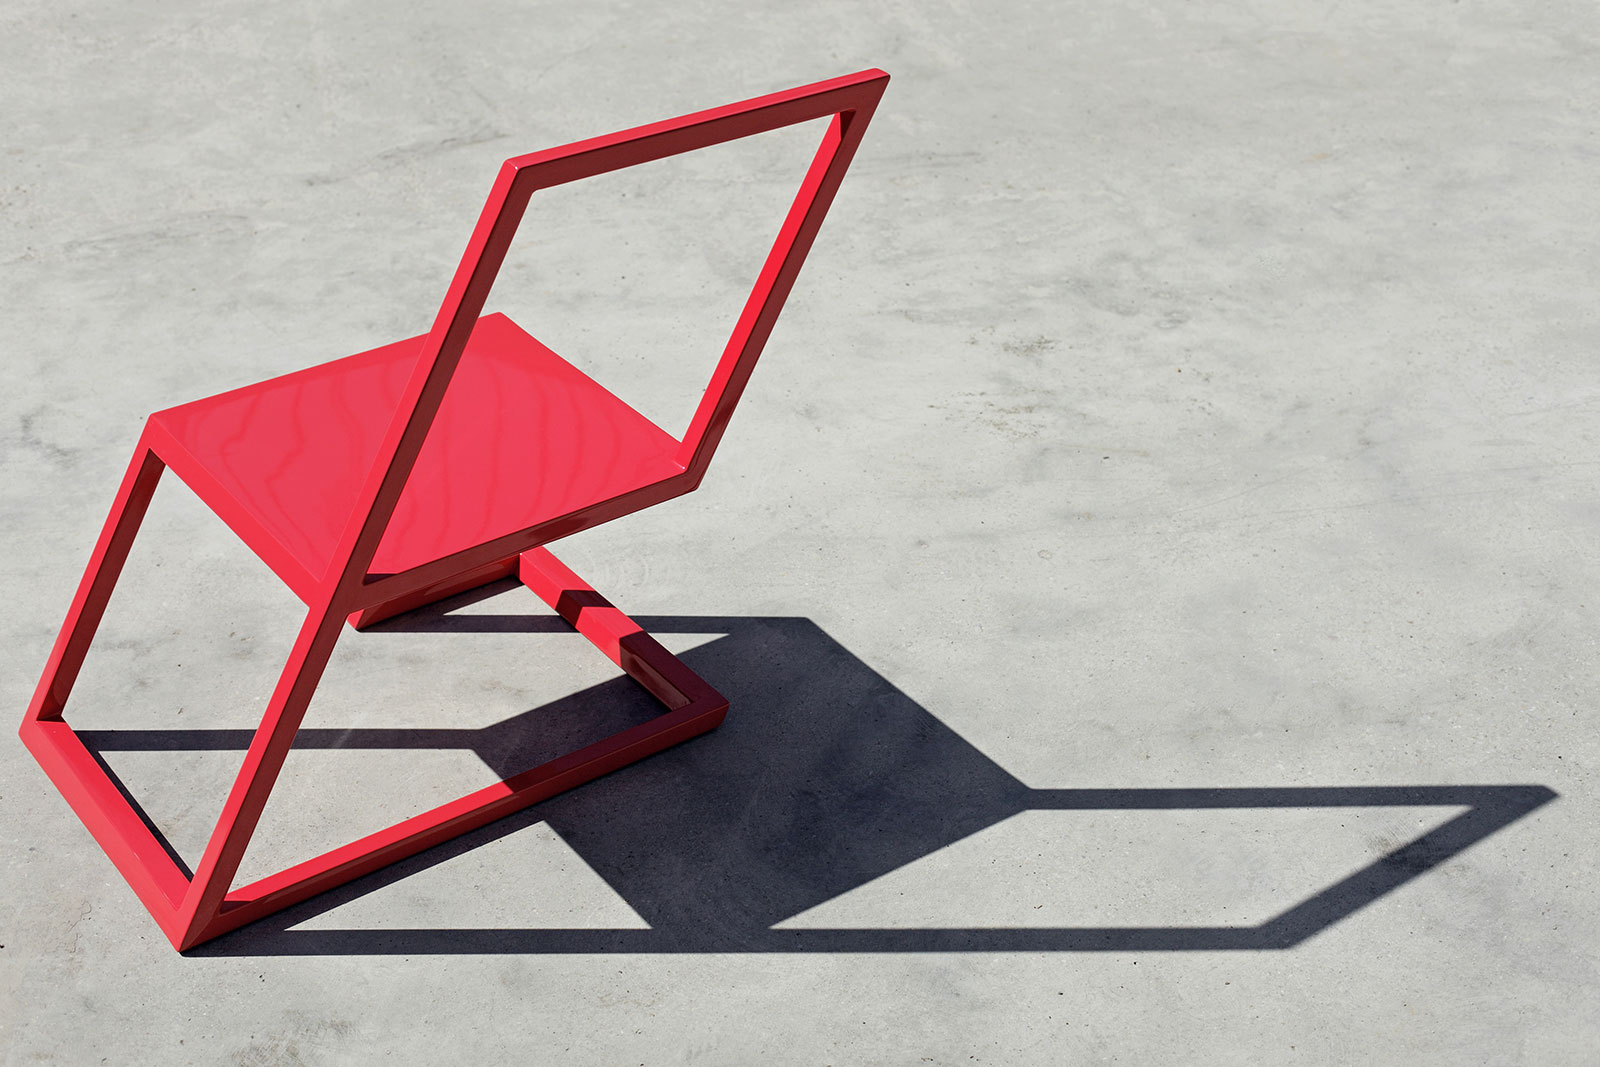 leaning-furniture-collection-by-xyz-integrated-architecture-5